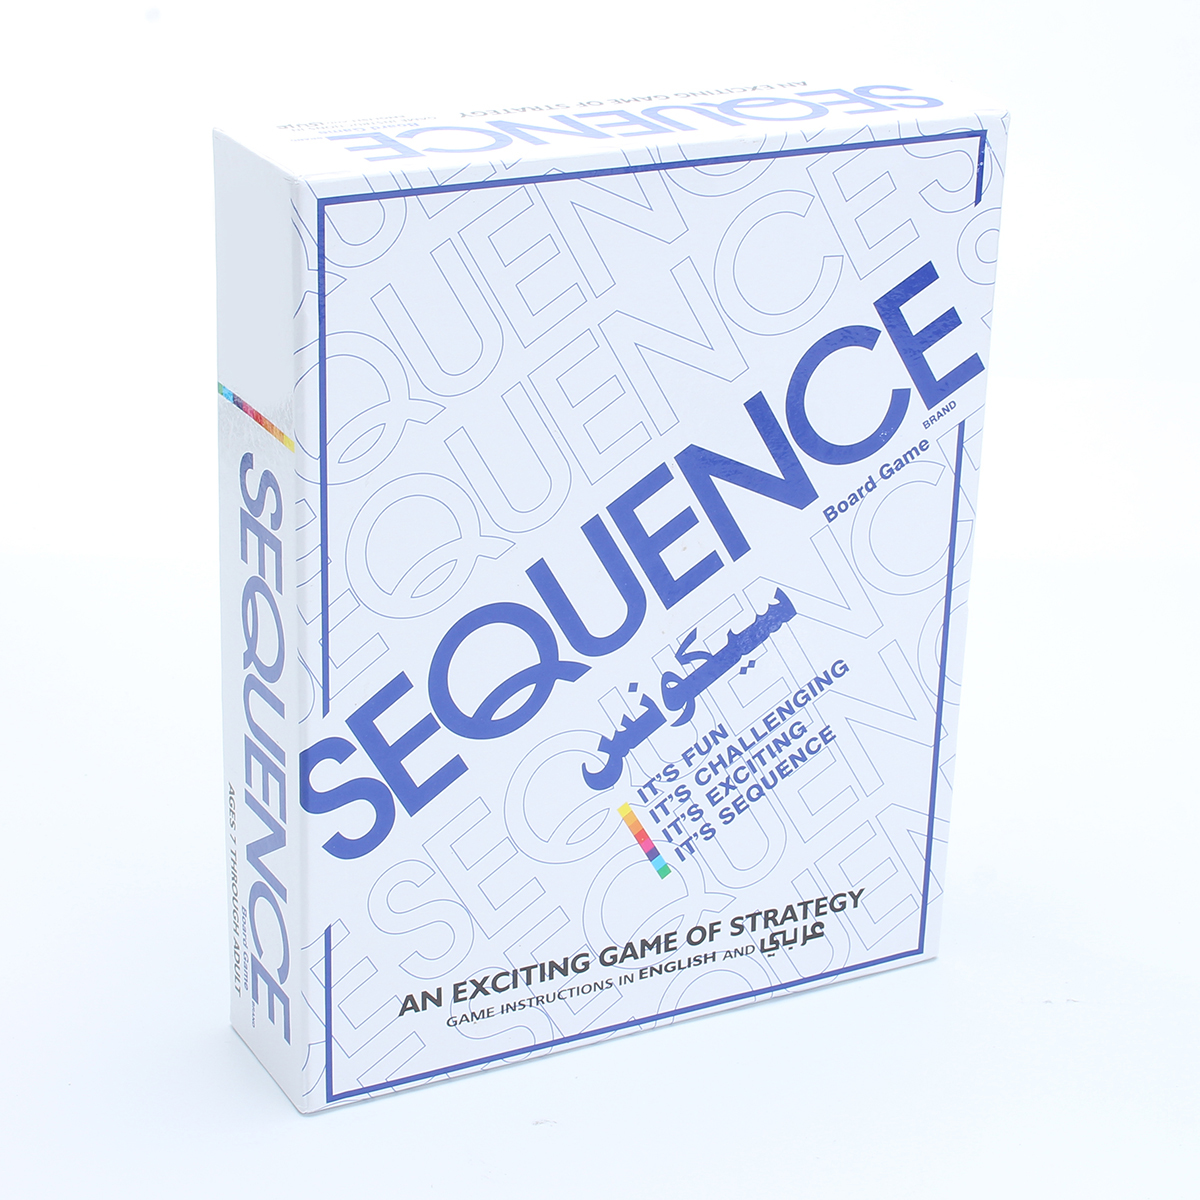 Sequence Card Game Challenge Strategy Board Games Funny Entertainment Board Game Friend Family Party Fun Playing Desktop CardsSequence Card Game Challenge Strategy Board Games Funny Entertainment Board Game Friend Family Party Fun Playing Desktop Cards